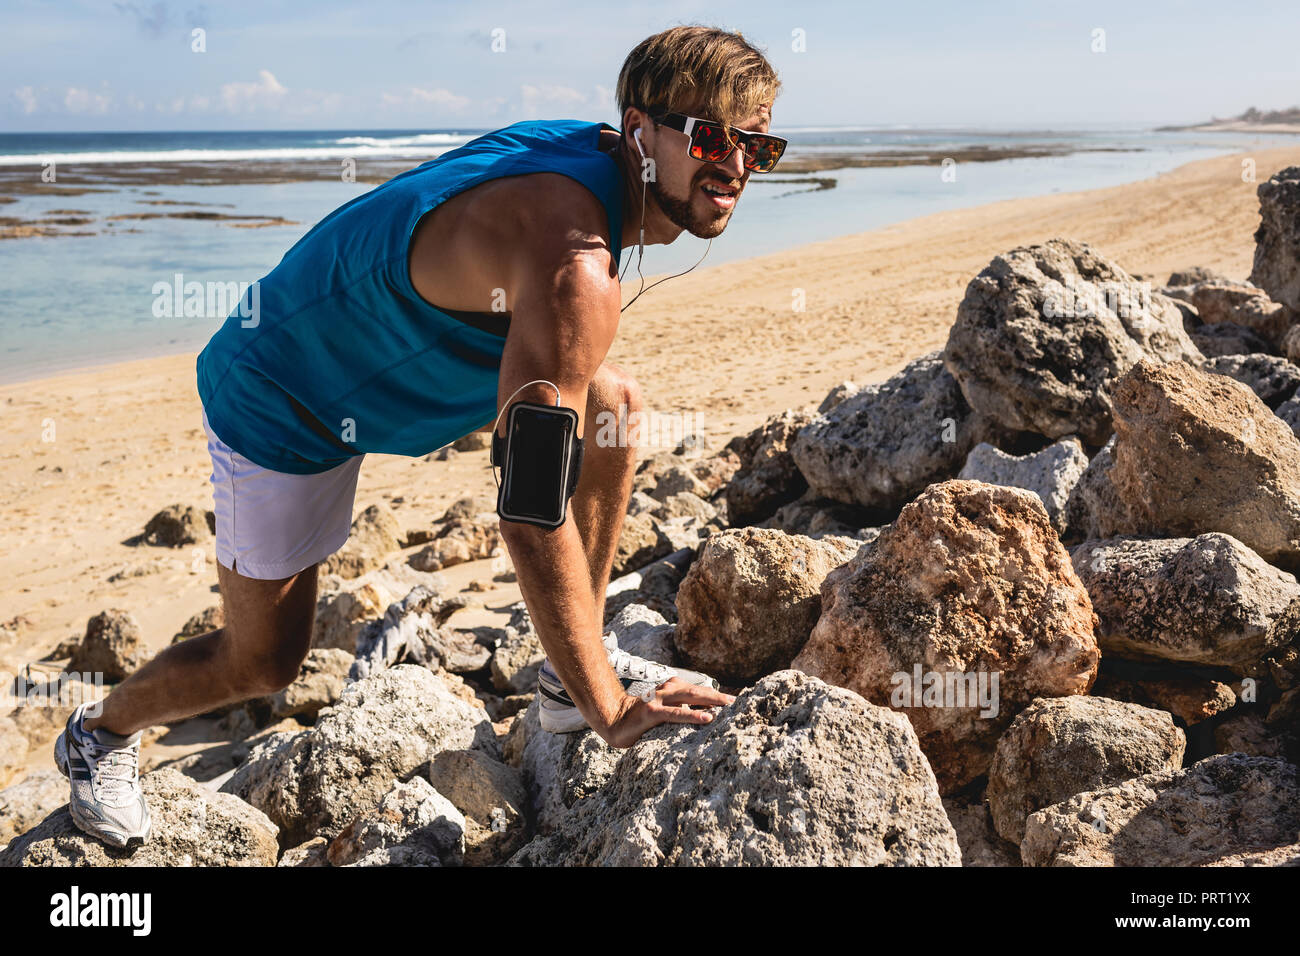 athletic man with armband climbing on rocks on beach, Bali, Indonesia - Stock Image